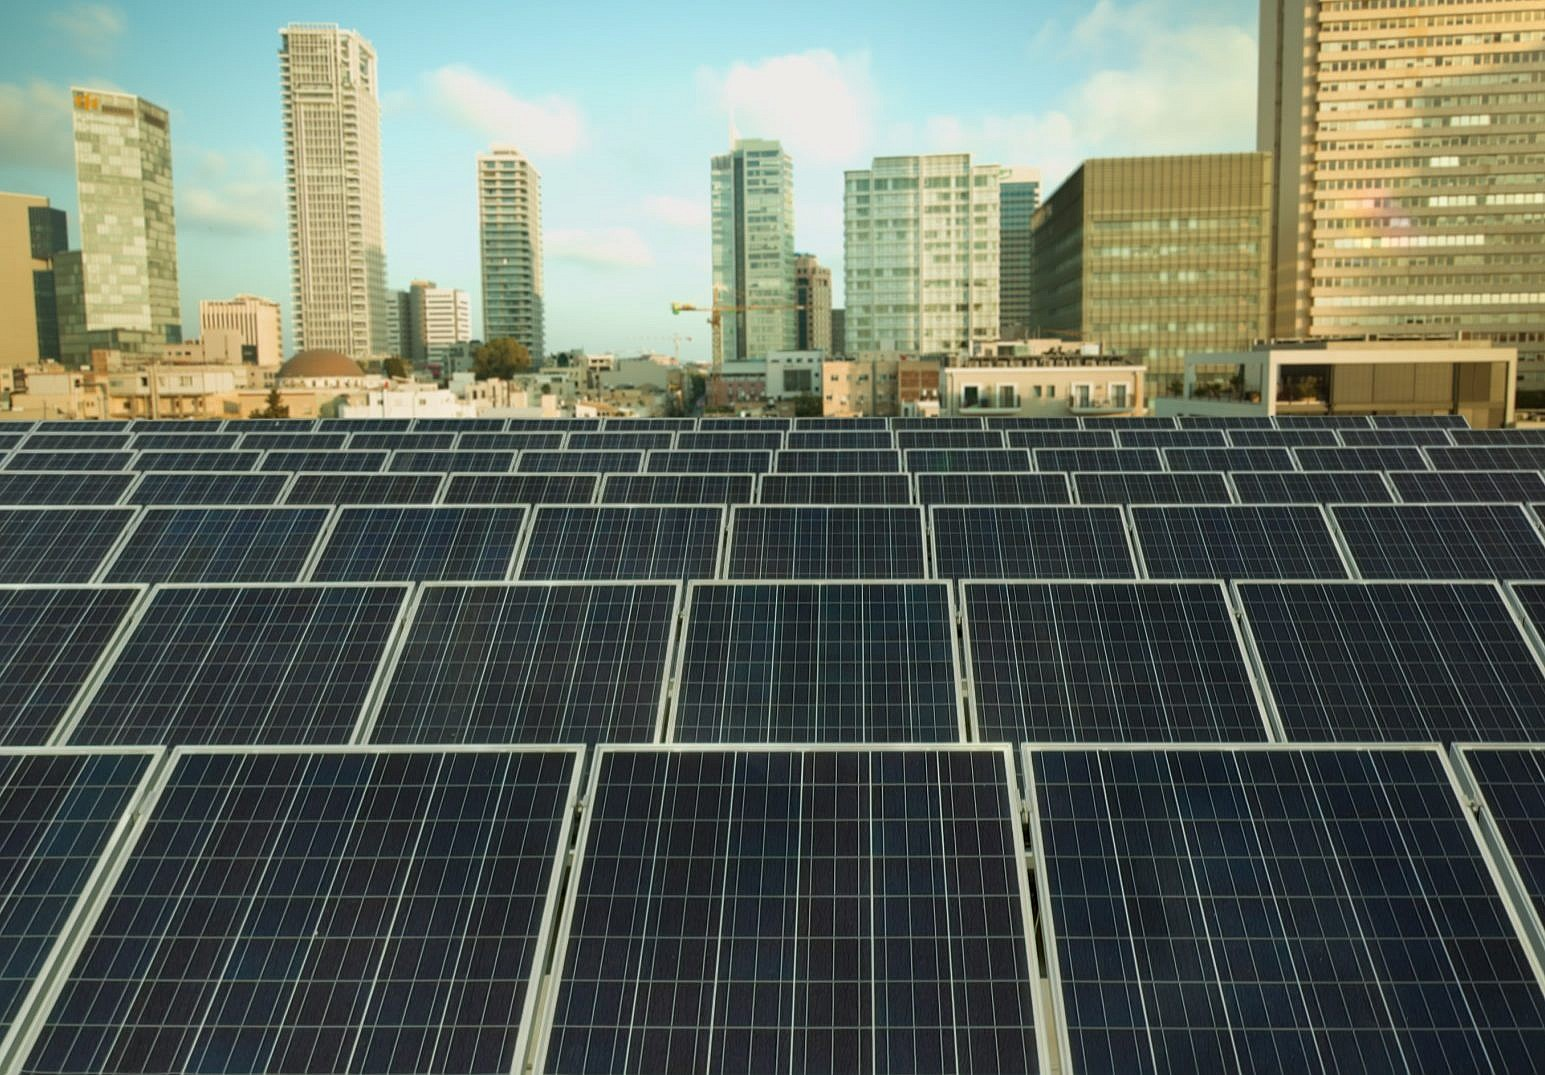 Campaign urges Israelis to put solar panels on the roof, make money